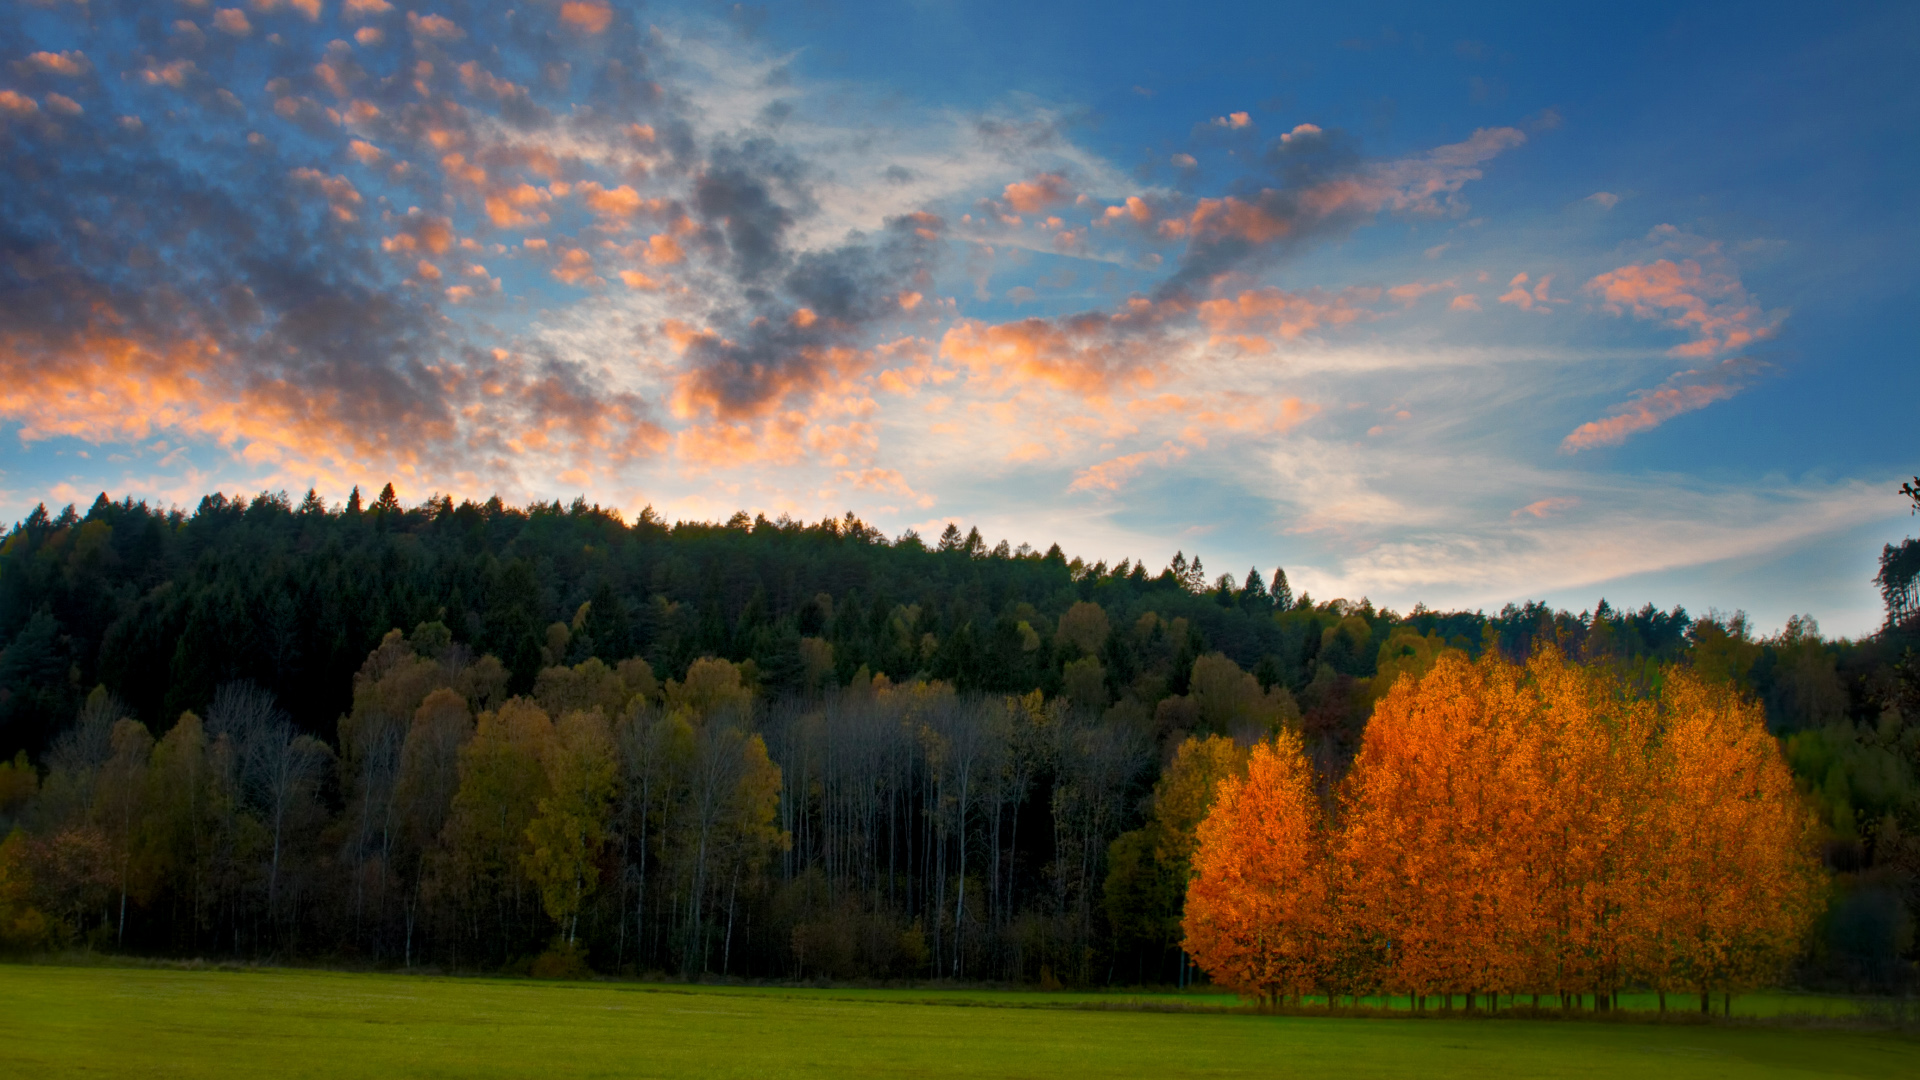 Autumn Jungle in Sweden Photography Wallpaper 8